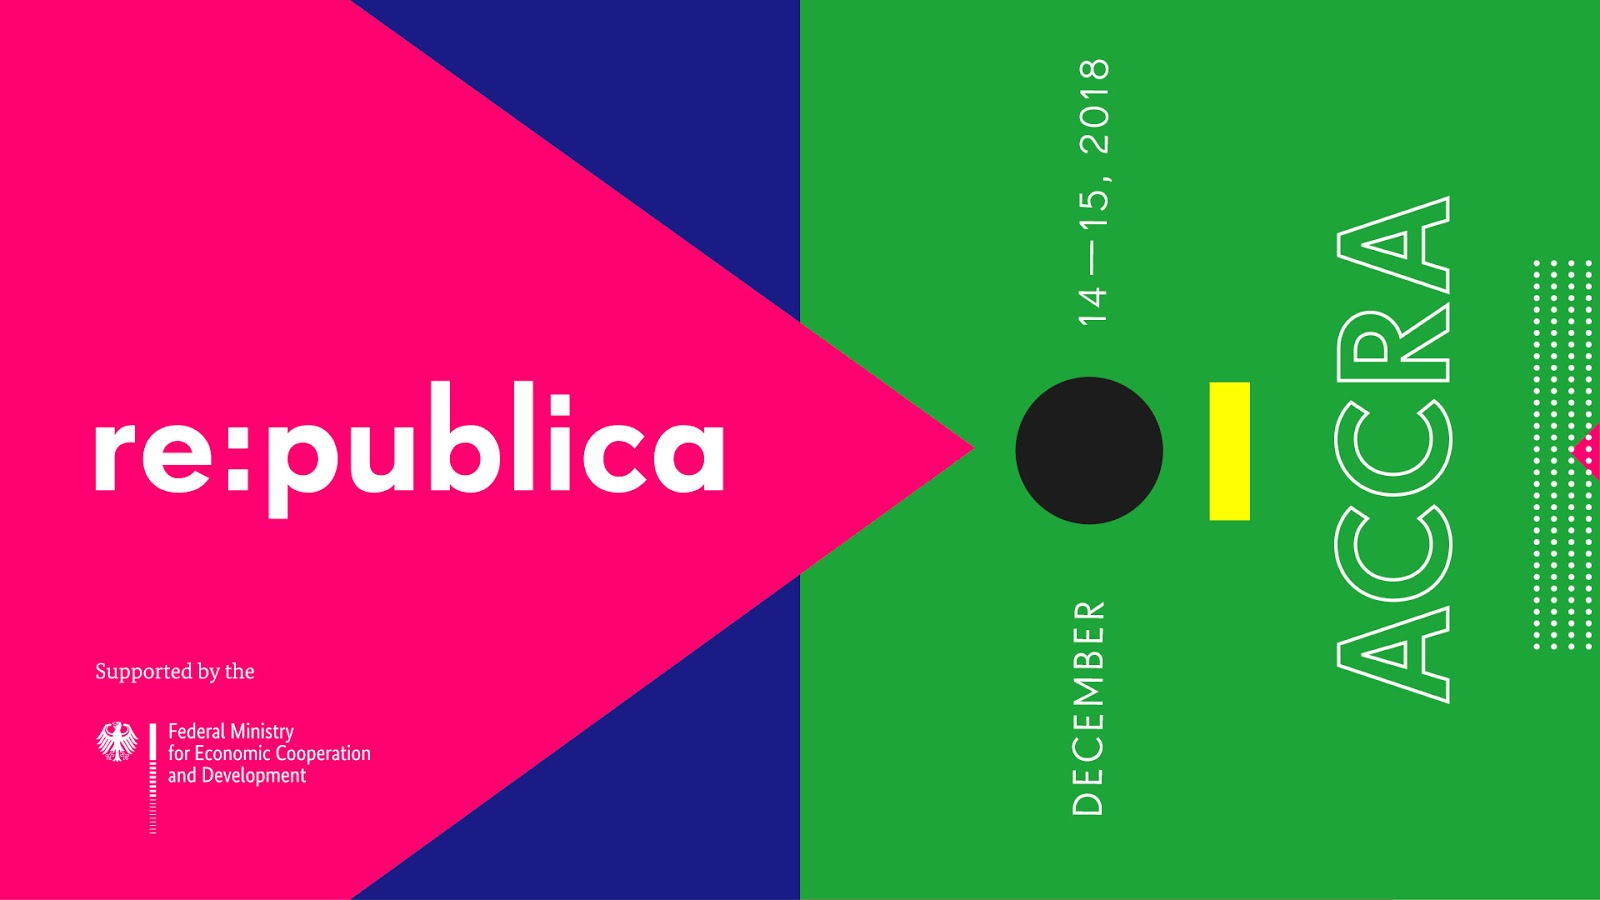 Accra to host republica, Europe's largest Digital and Internet Conference